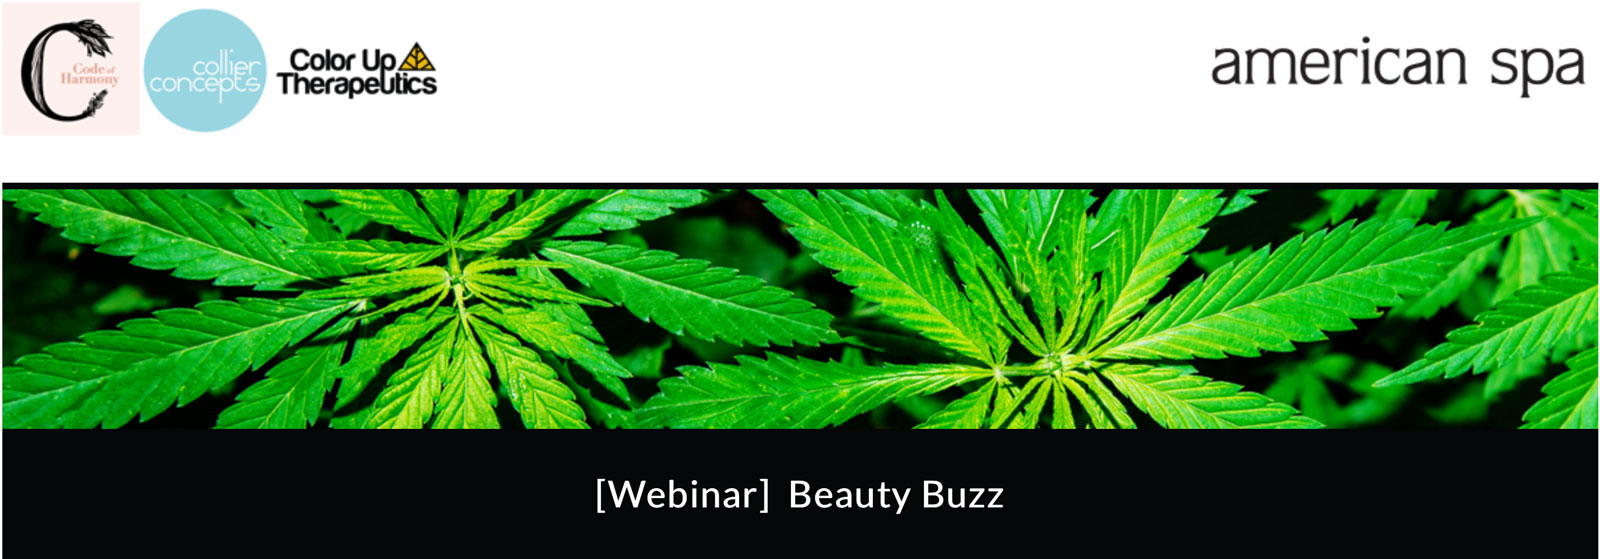 Webinar graphic for Beauty Buzz